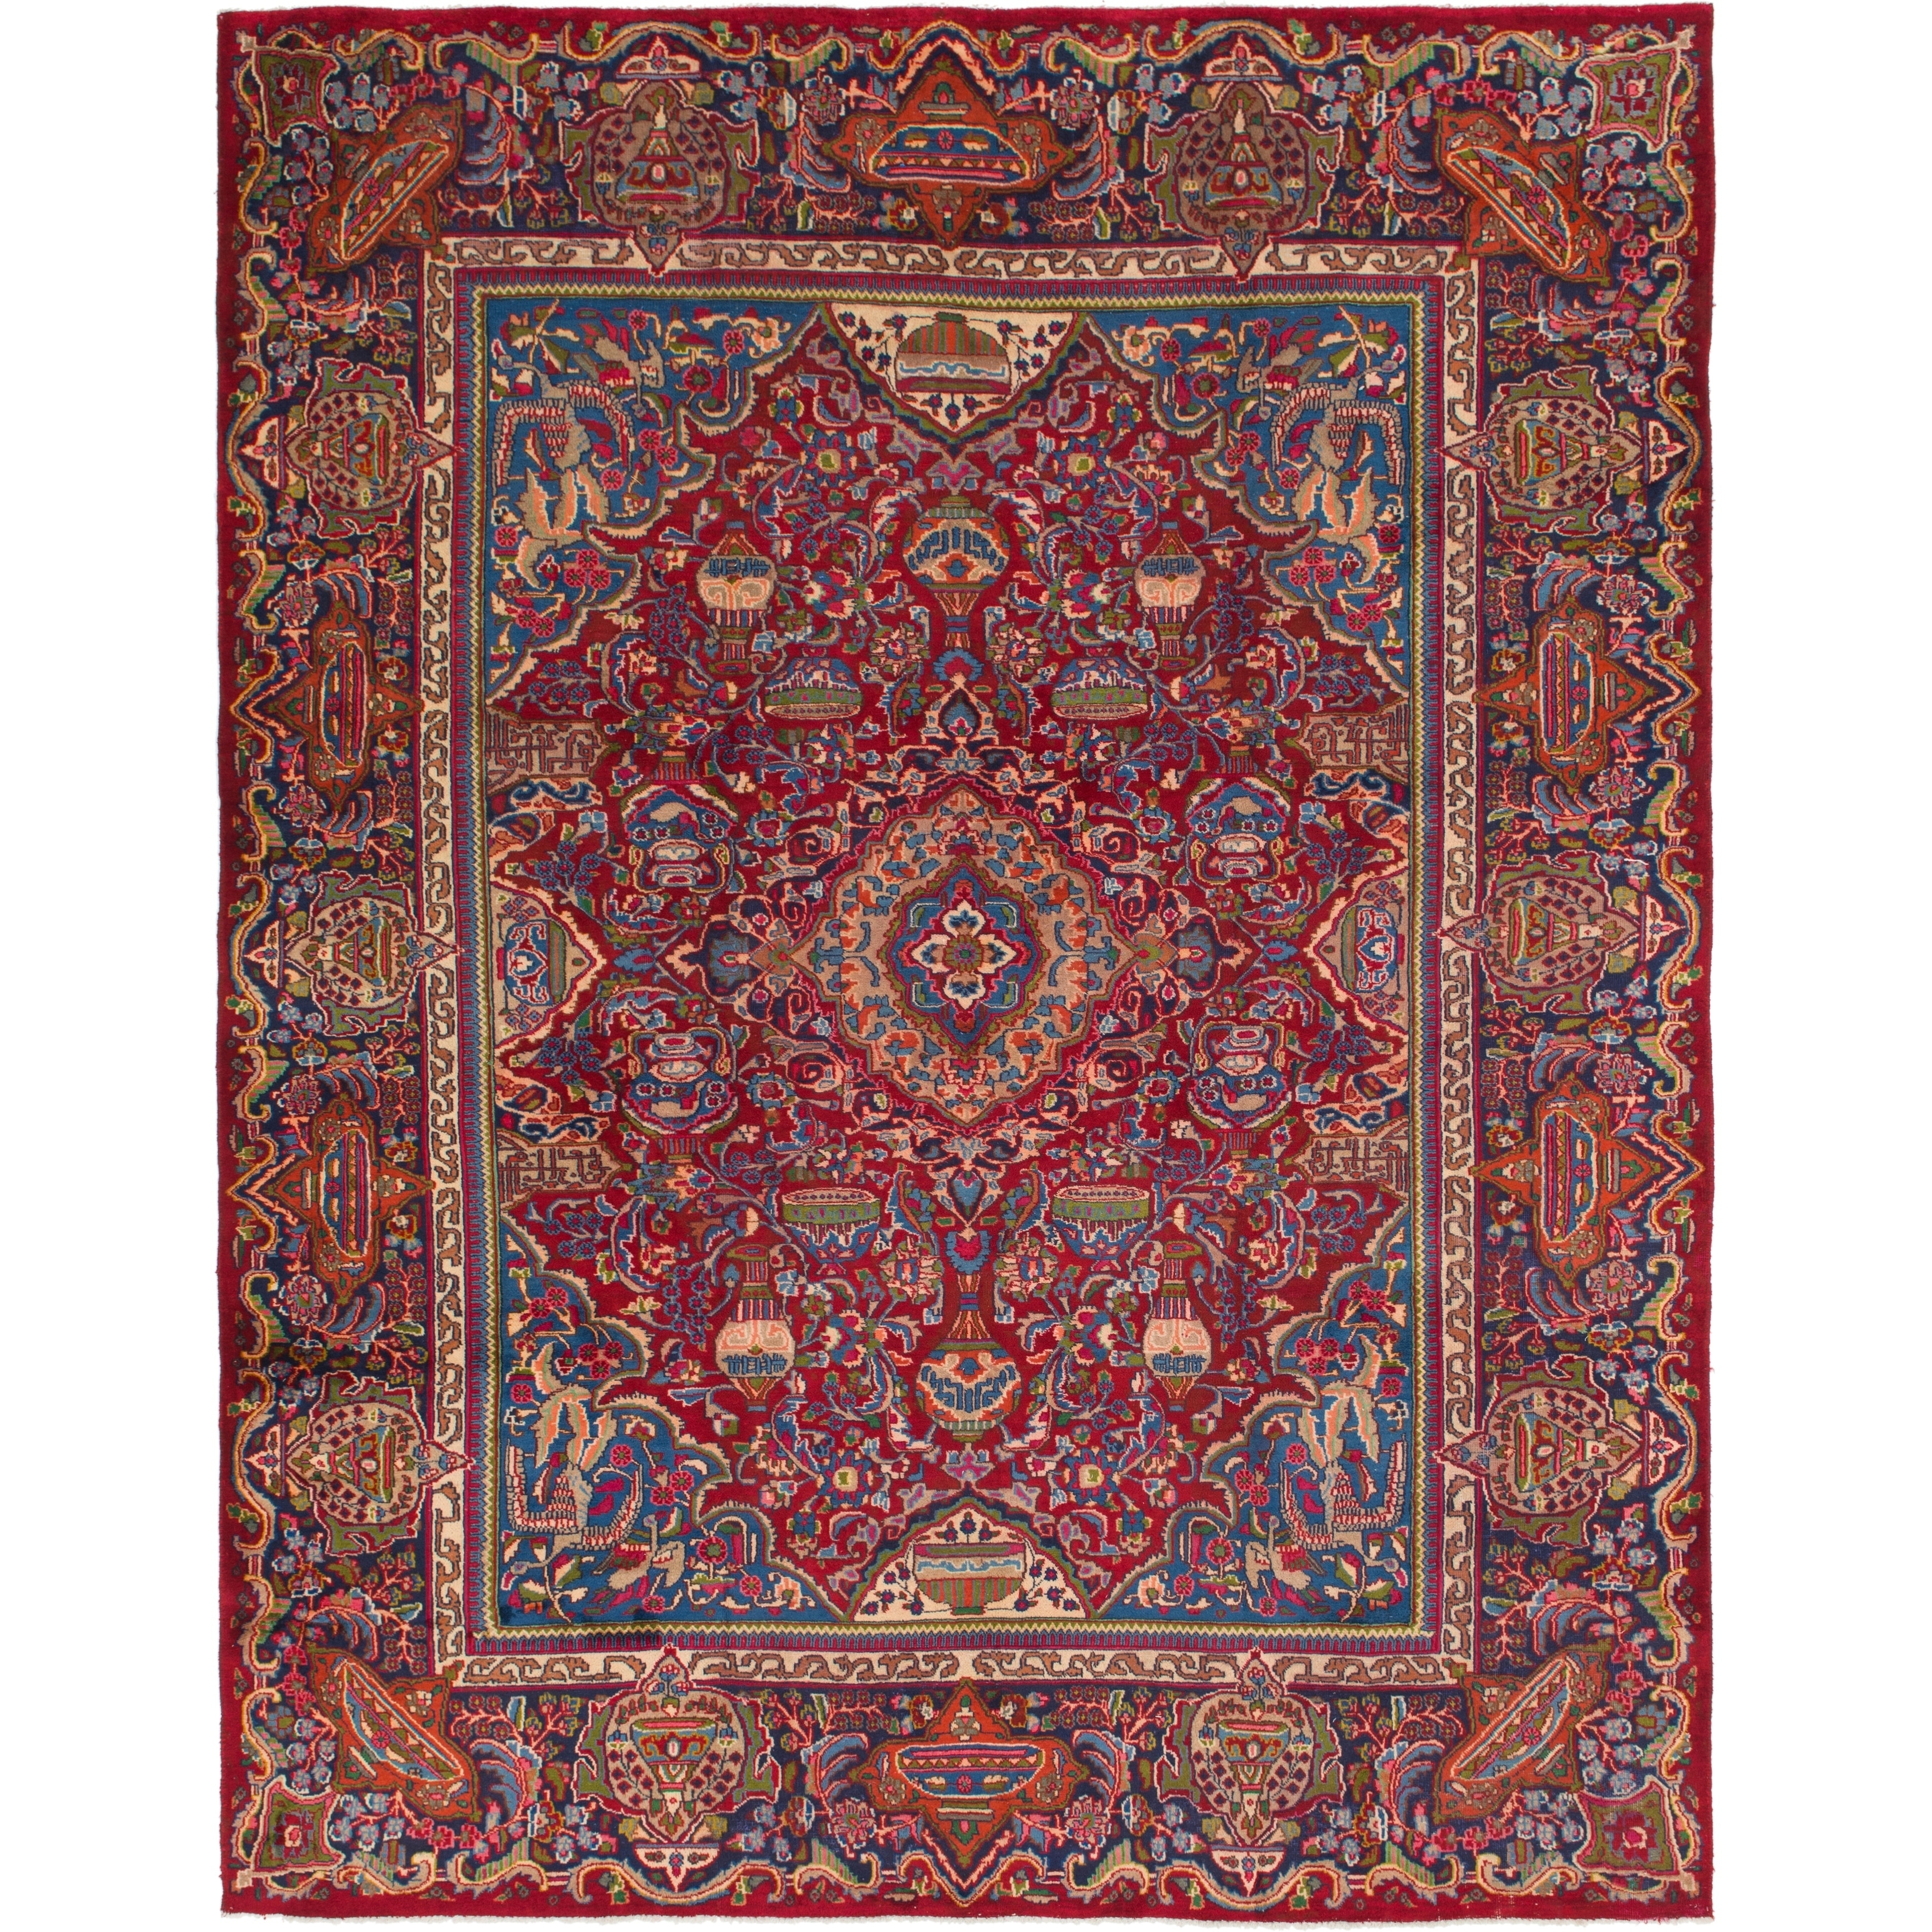 Hand Knotted Kashmar Semi Antique Wool Area Rug - 9 9 x 12 8 (Red - 9 9 x 12 8)